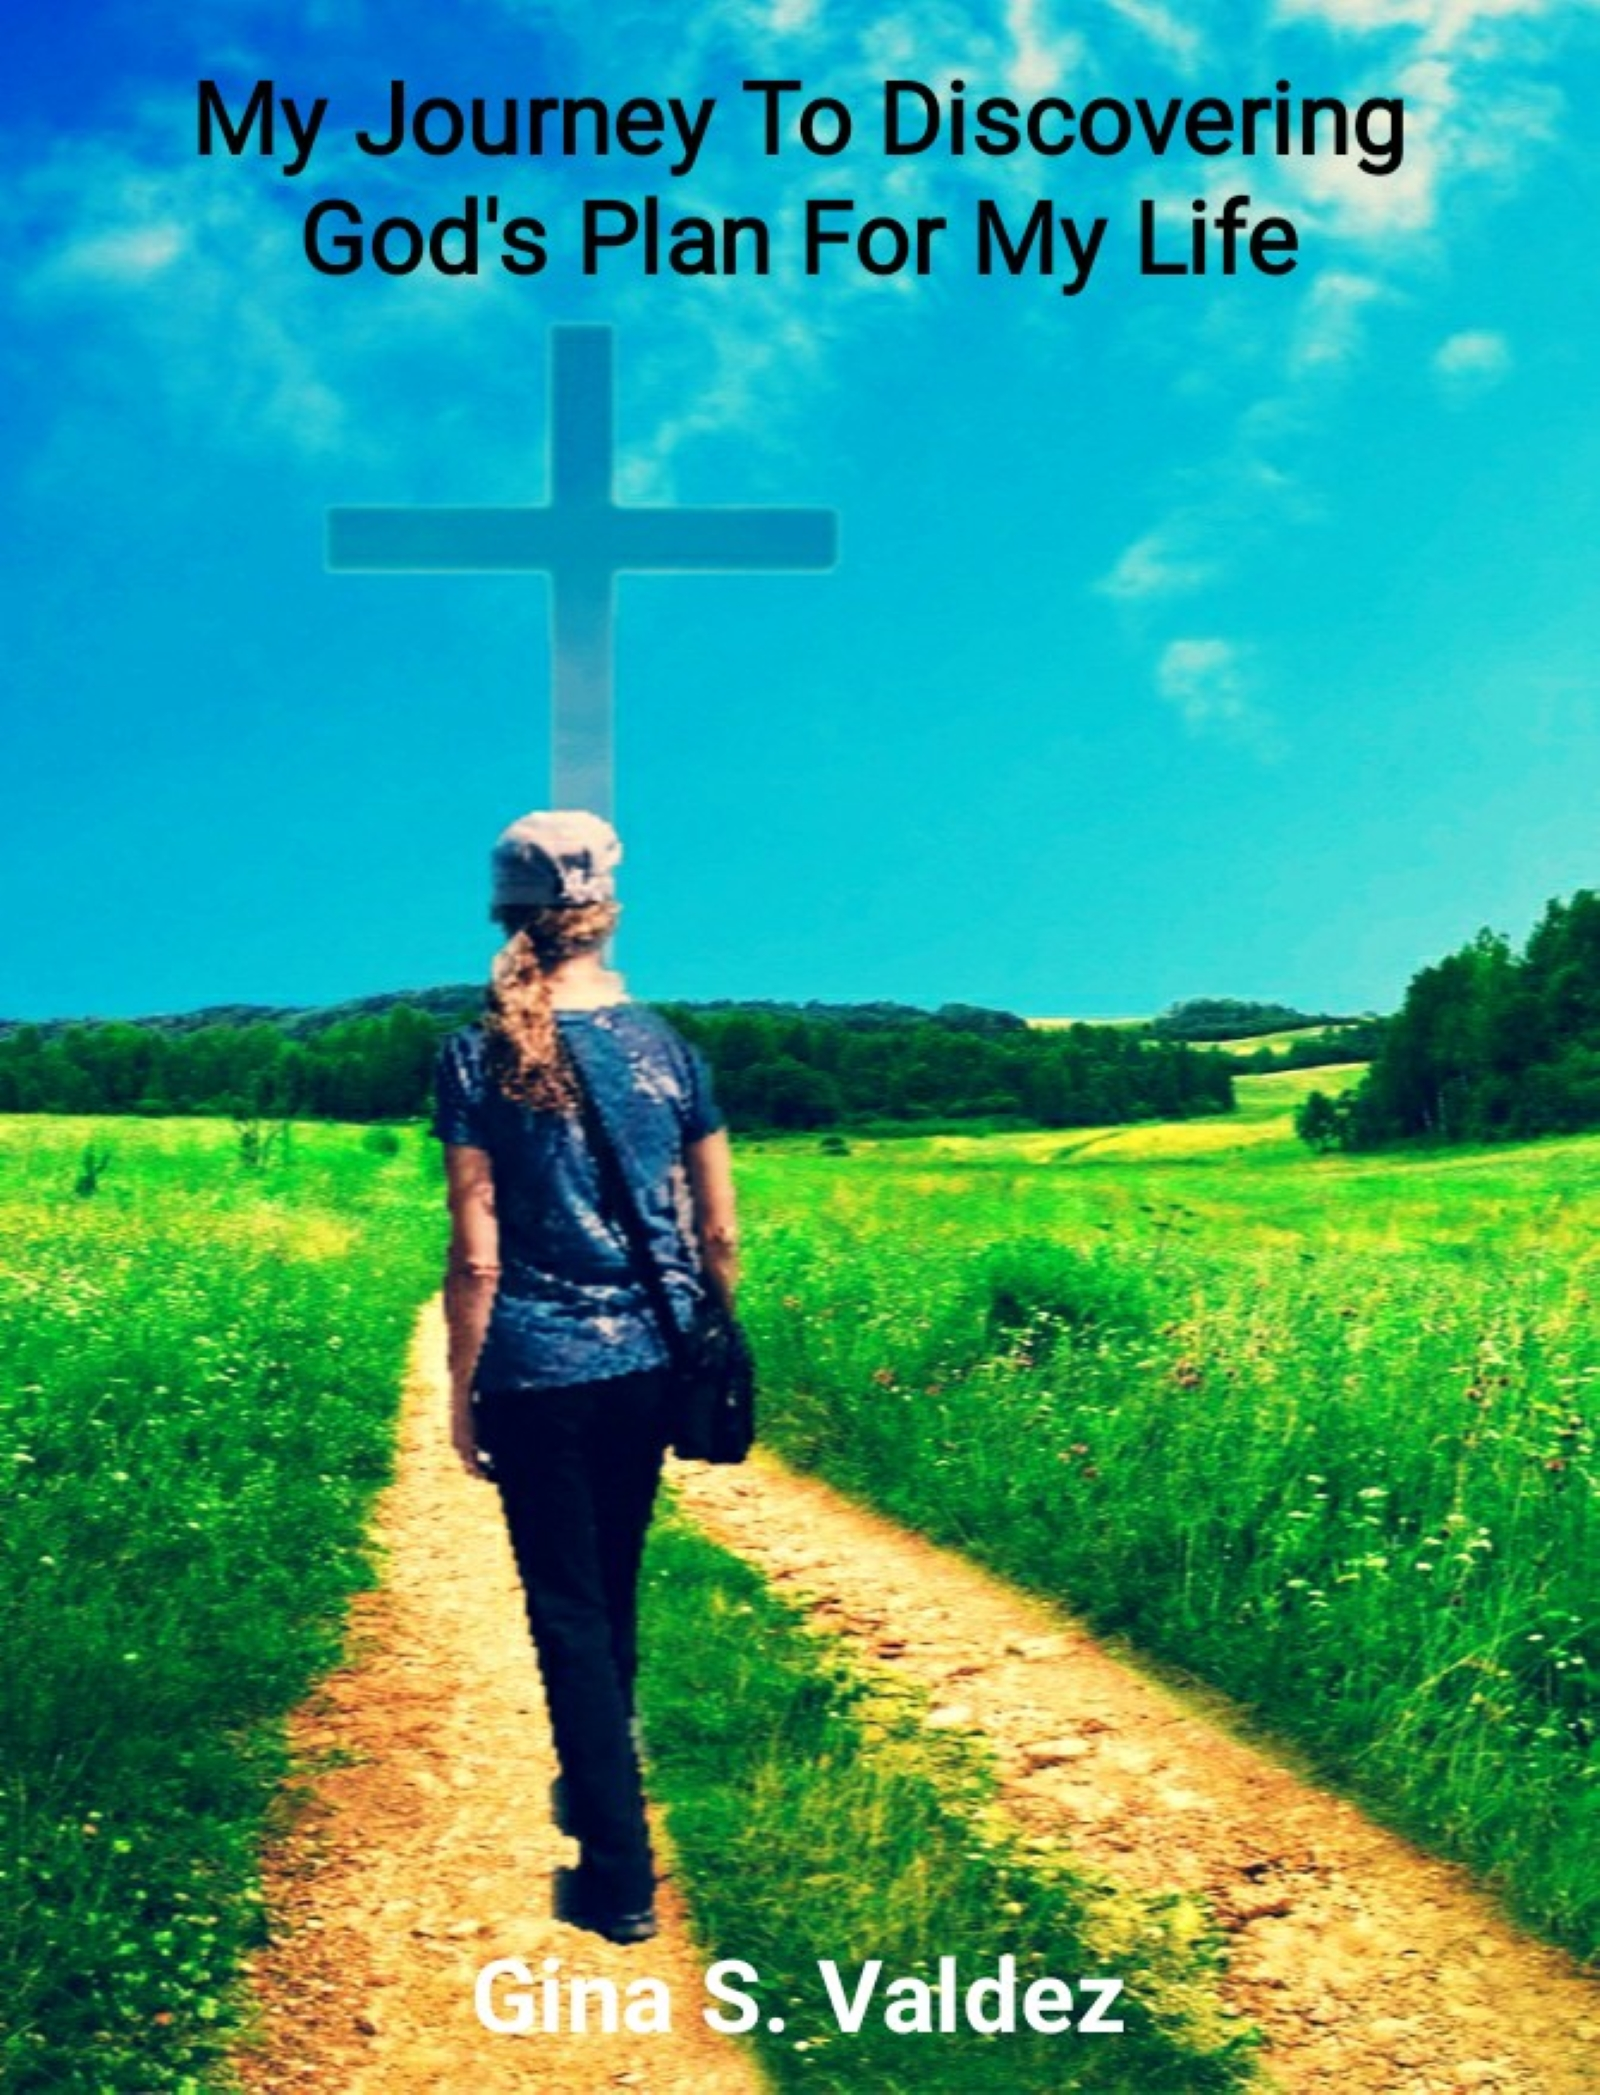 My Journey to Discovering God's Plan for My Life